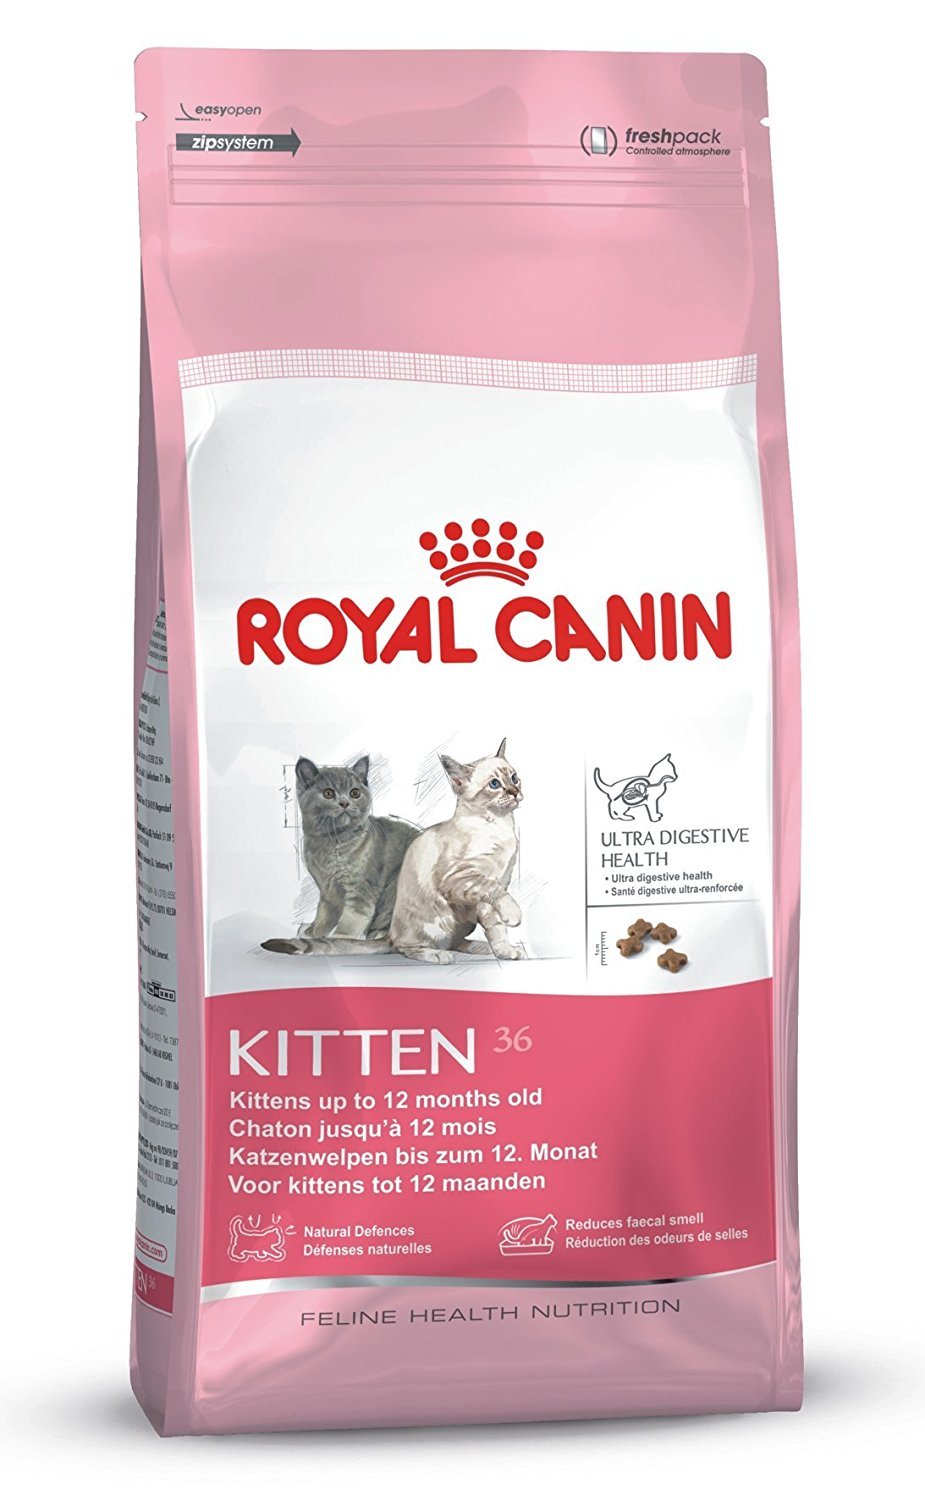 Royal Canin Dental Food For Dogs